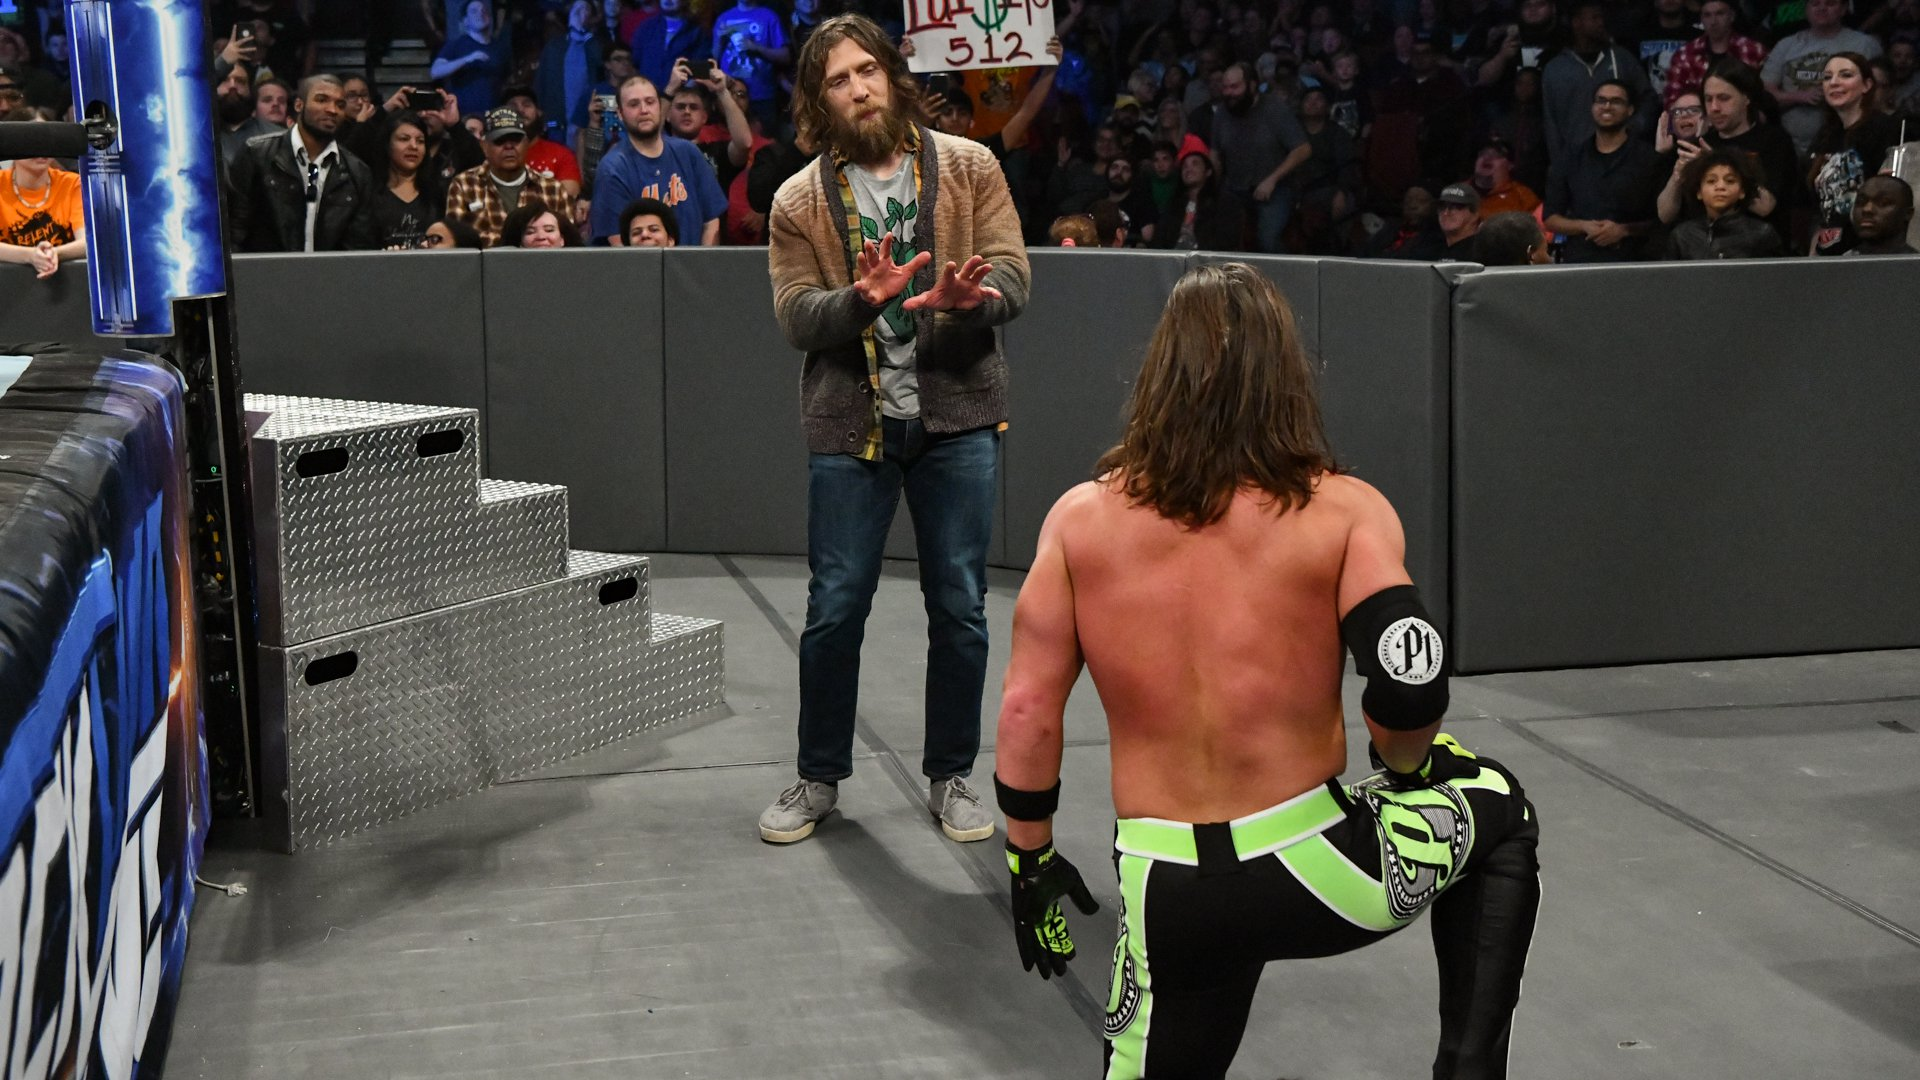 Bryan attempts to distract Styles...